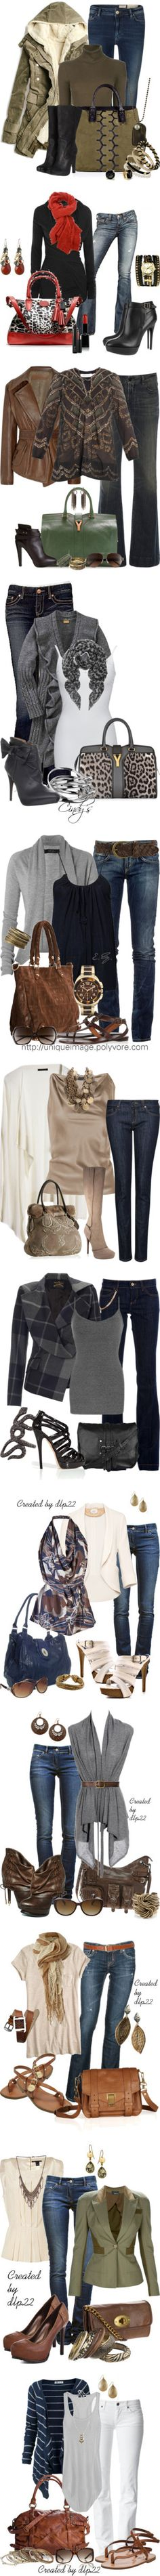 """""""Jean Outfits 03"""" by msbeckyg ❤ liked on Polyvore"""